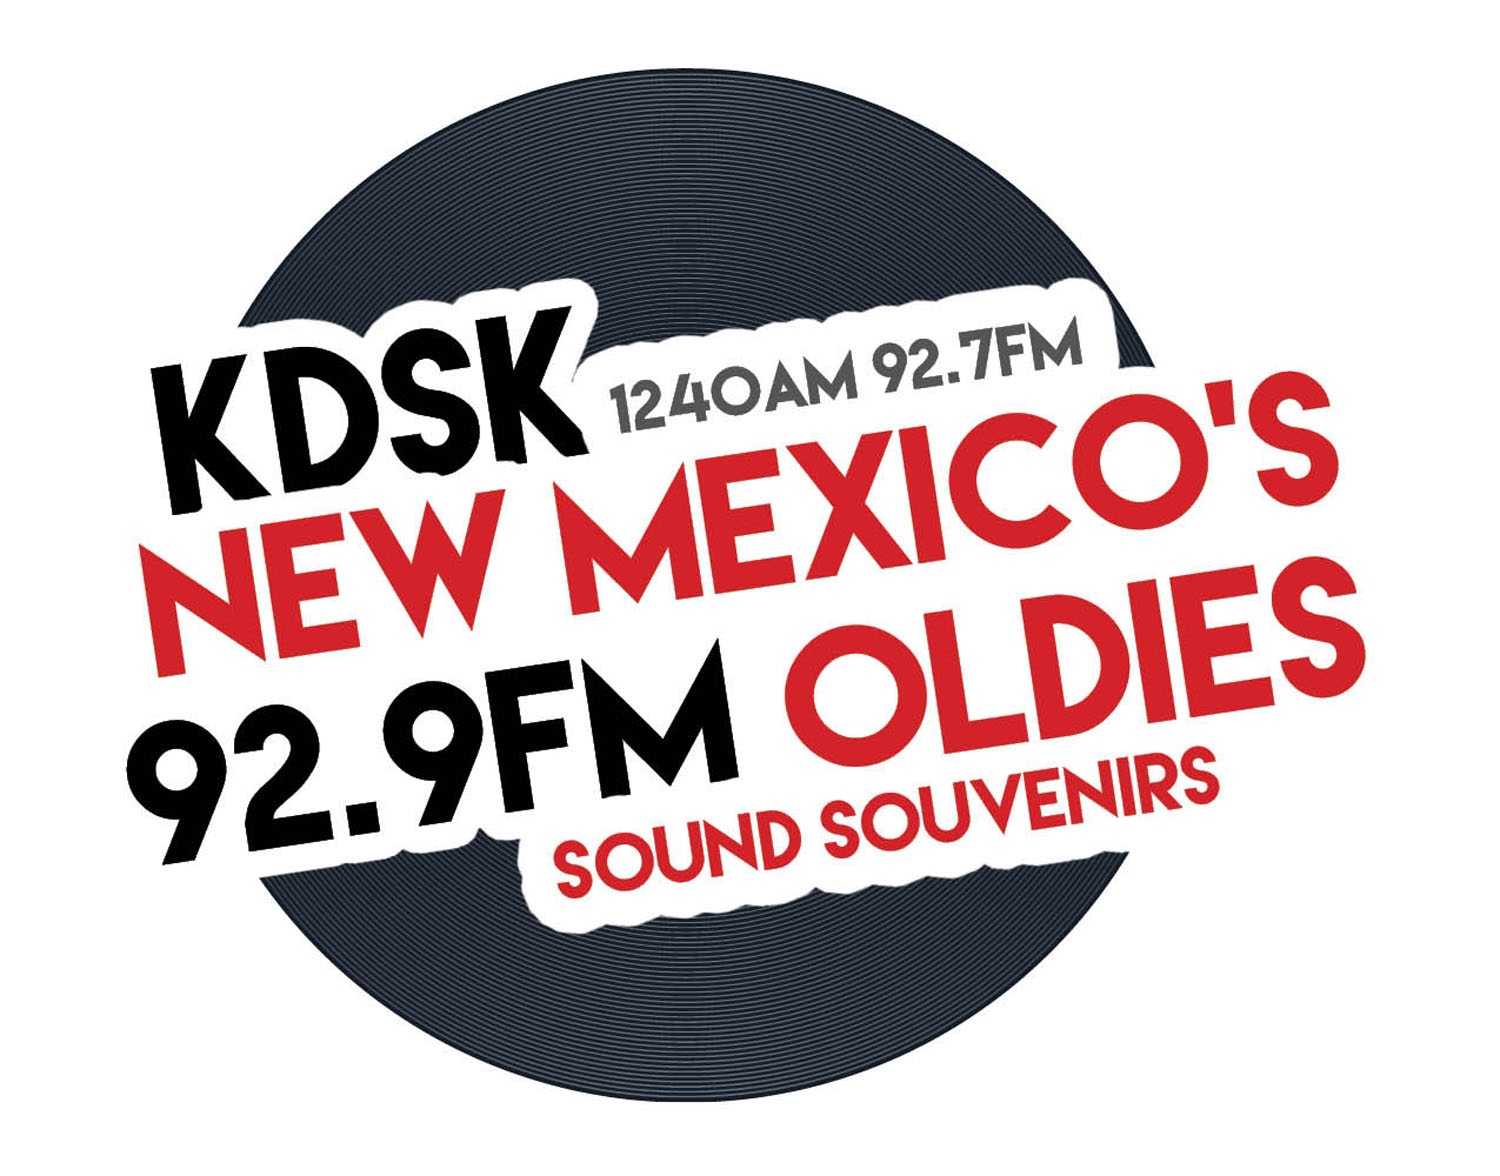 KDSK 92.7 - Sound Souvenir Music from the 50's, 60's, 70's and 80's!